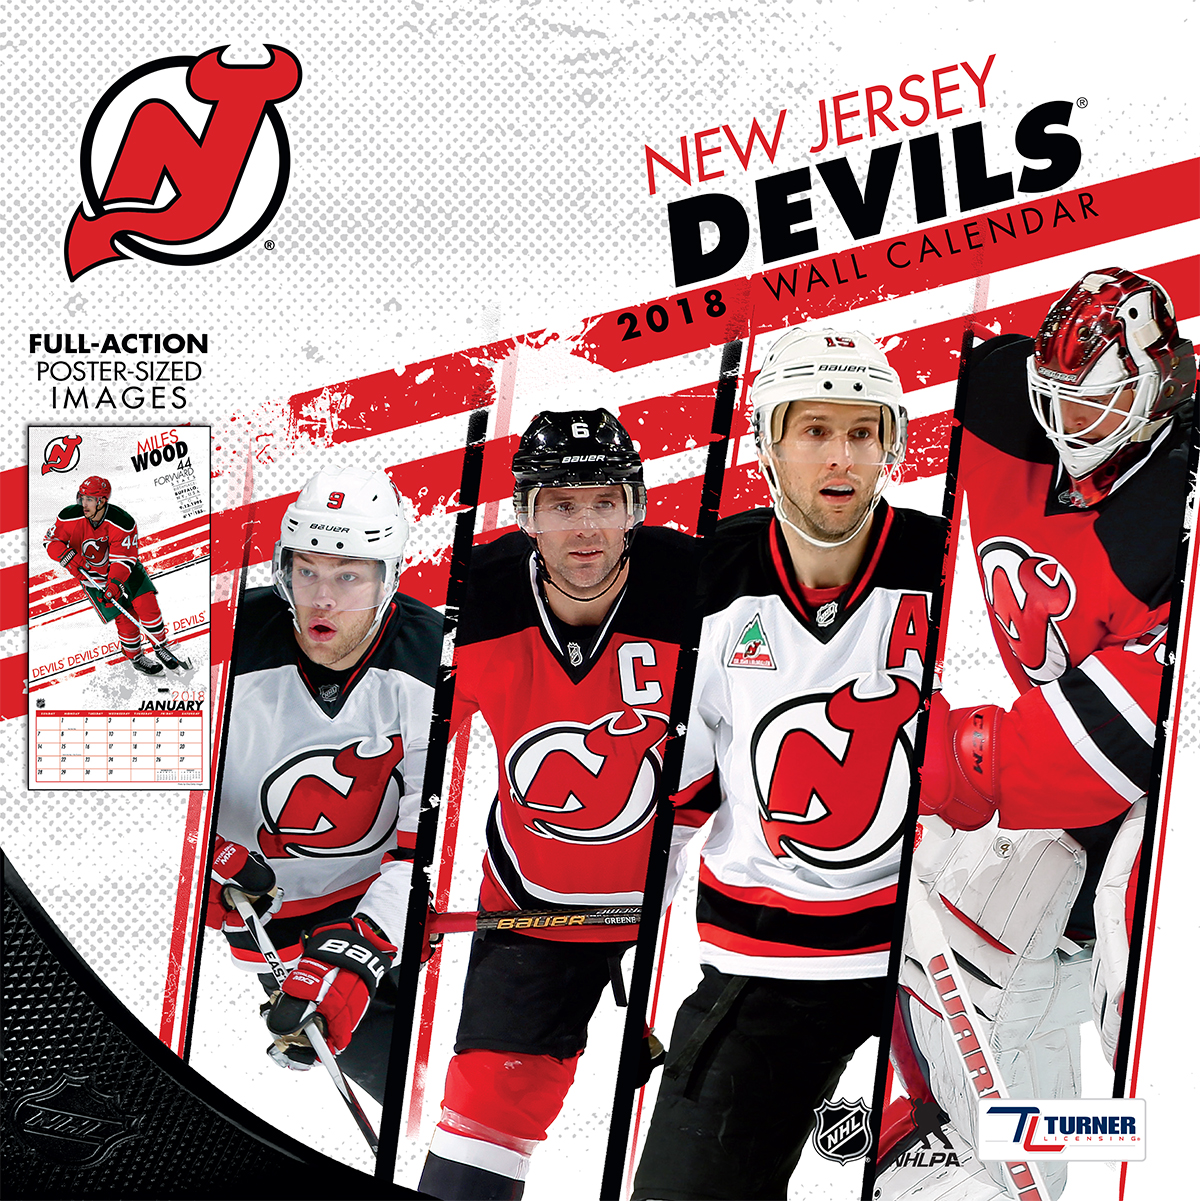 TURNER SPORTS NEW JERSEY DEVILS 2018 12X12 TEAM WALL CALENDAR